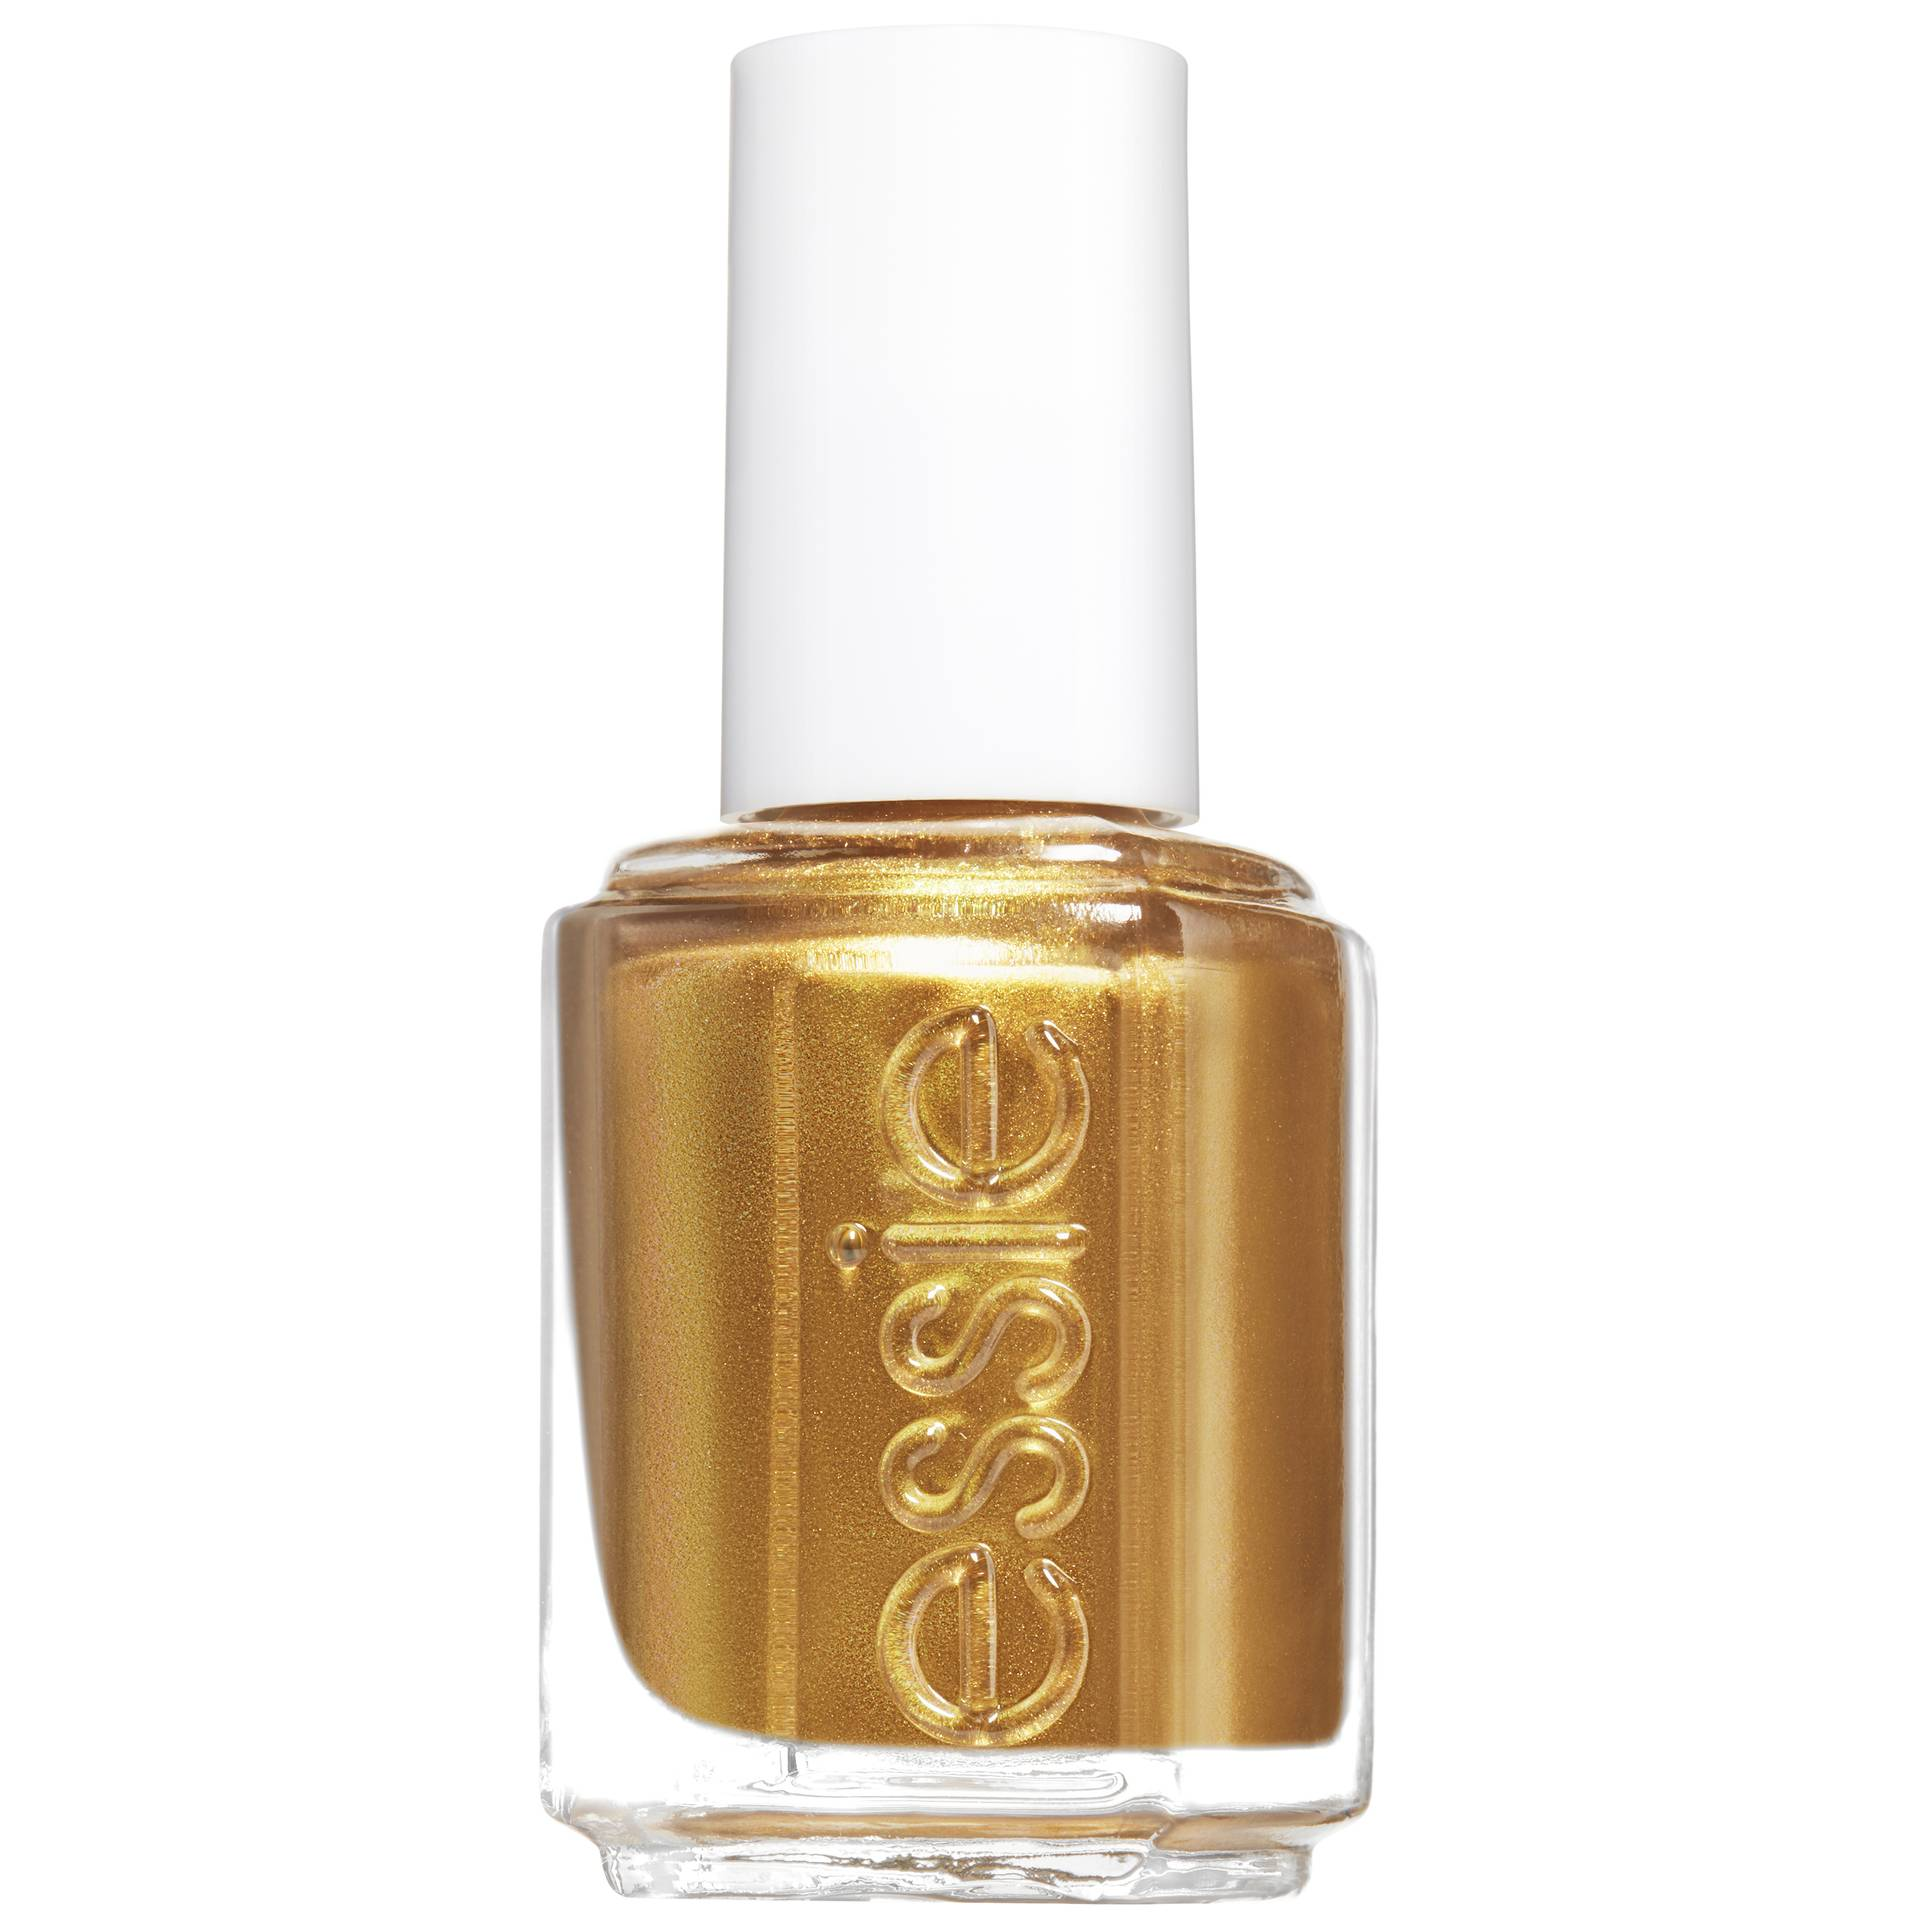 Essie Metallic Gold Nail Polish: Gold Chrome Metallic Nail Polish